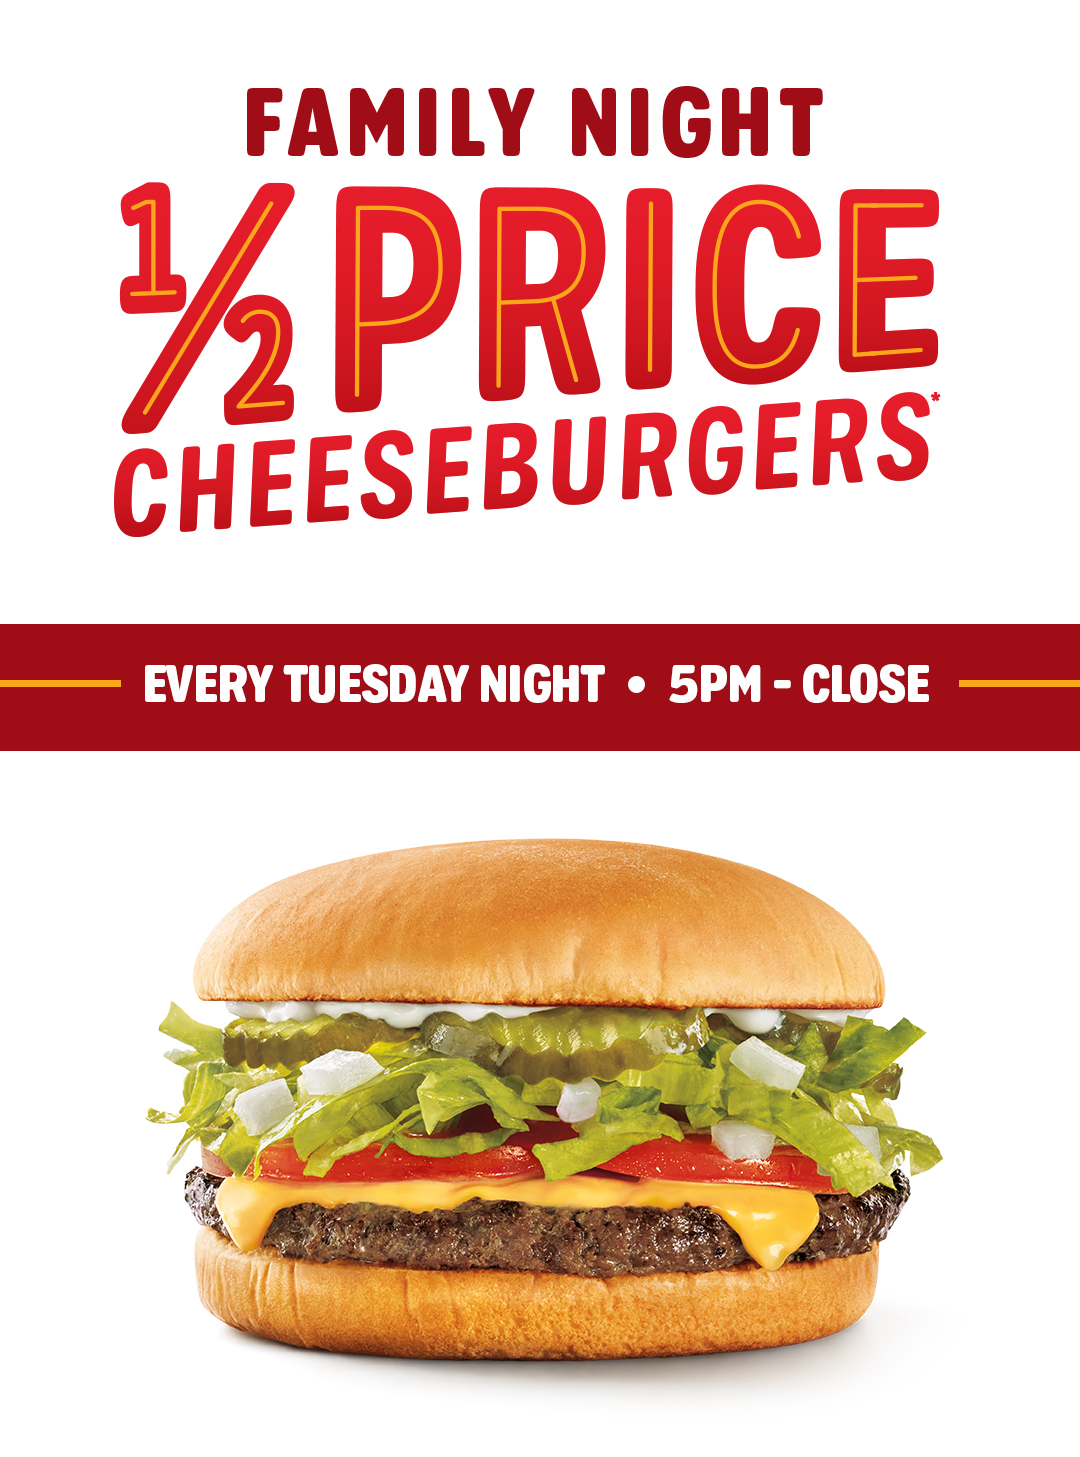 Sonic Hours Near Me >> Sonic Drive In 1 2 Price Sonic Cheeseburgers Tuesday Nights 5pm Close